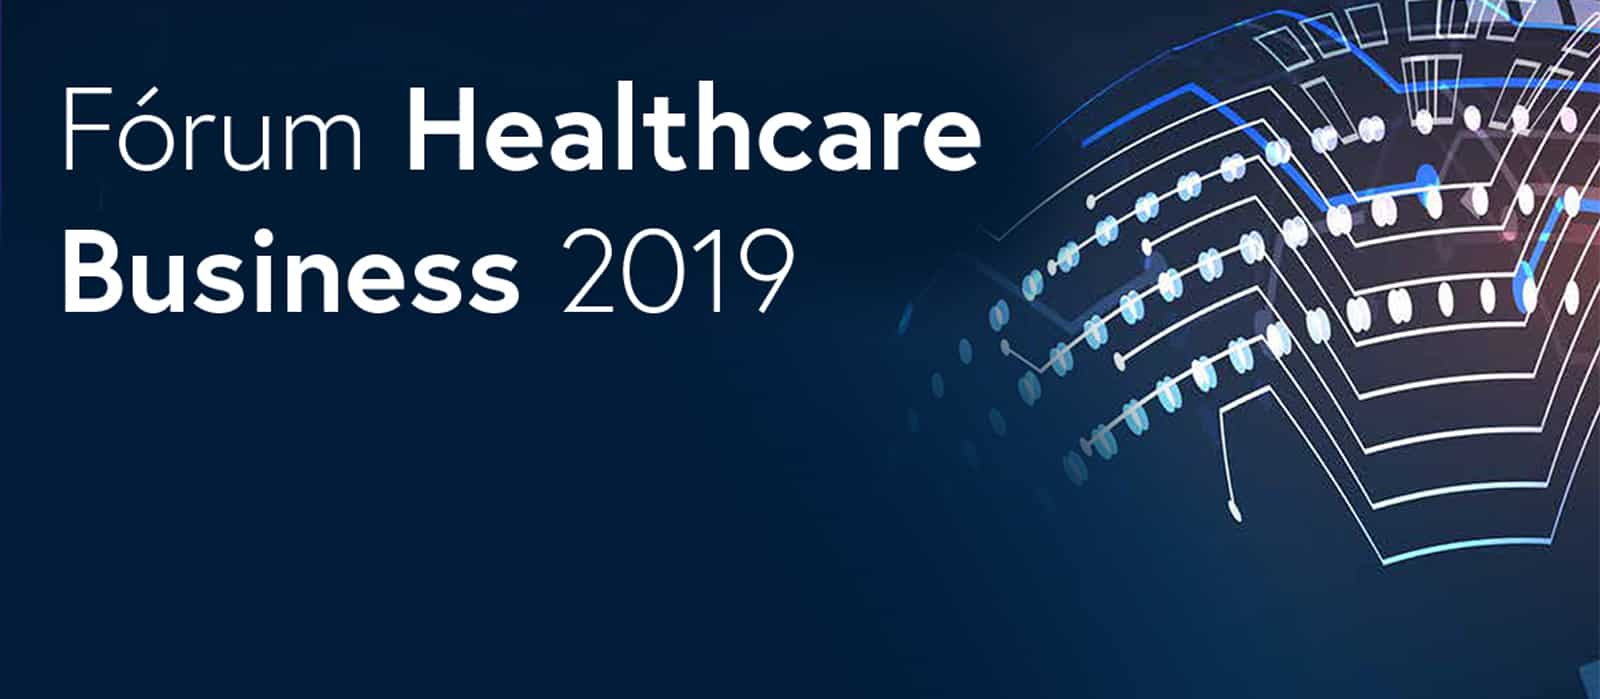 SISQUAL will participate in the Healthcare Business 2019 Forum